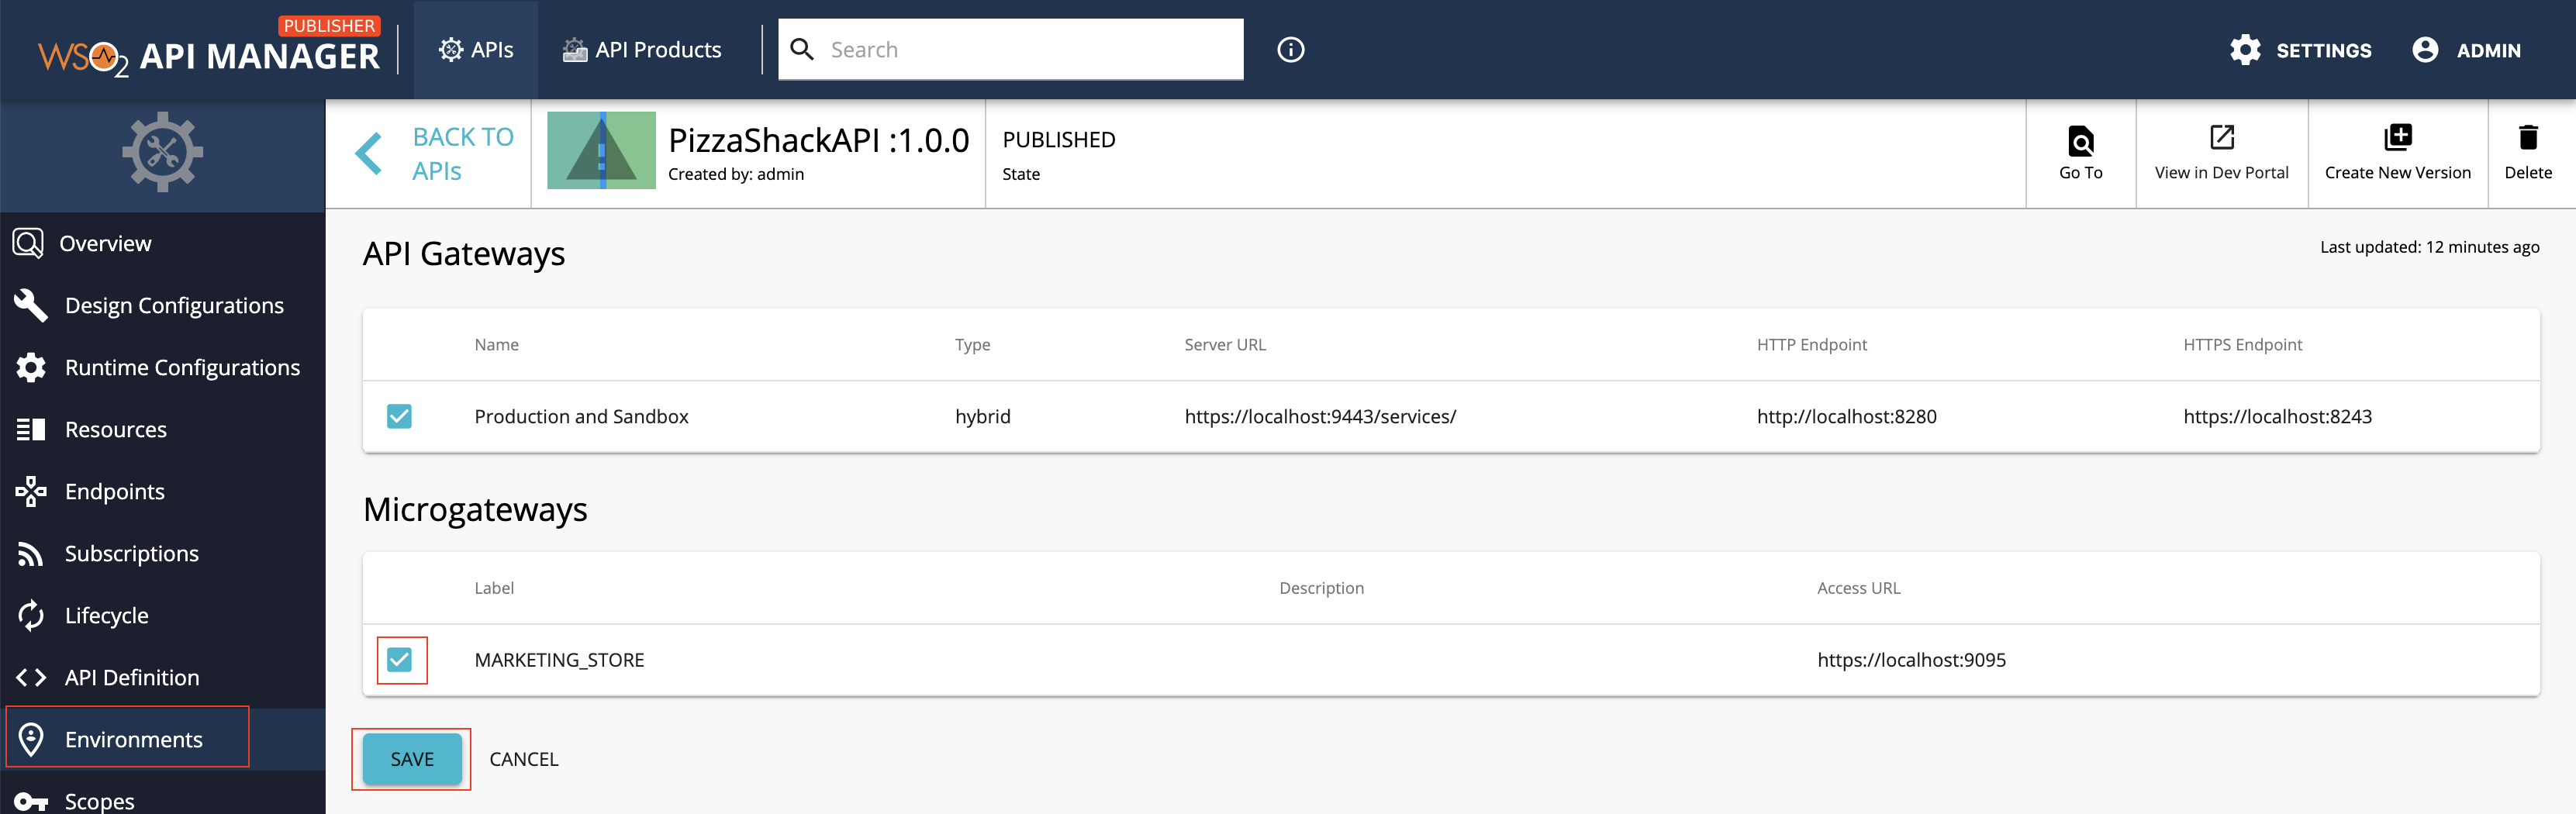 Microgateway label in the Publisher